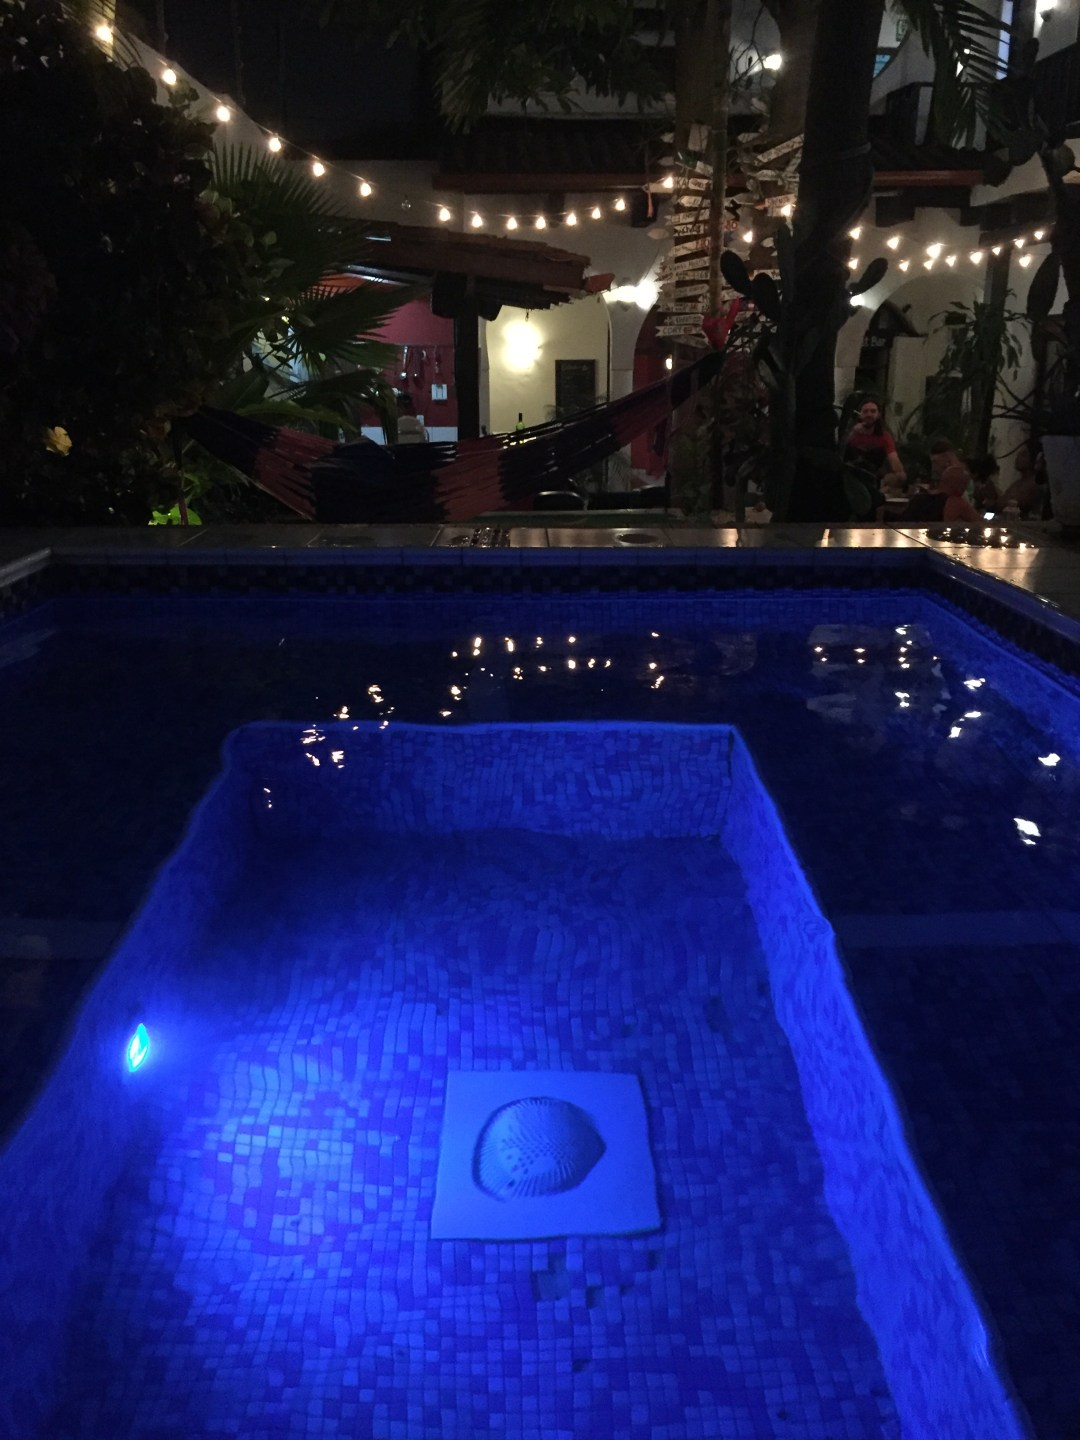 unique hotels: pool at hostel in courtyard with string lights at night